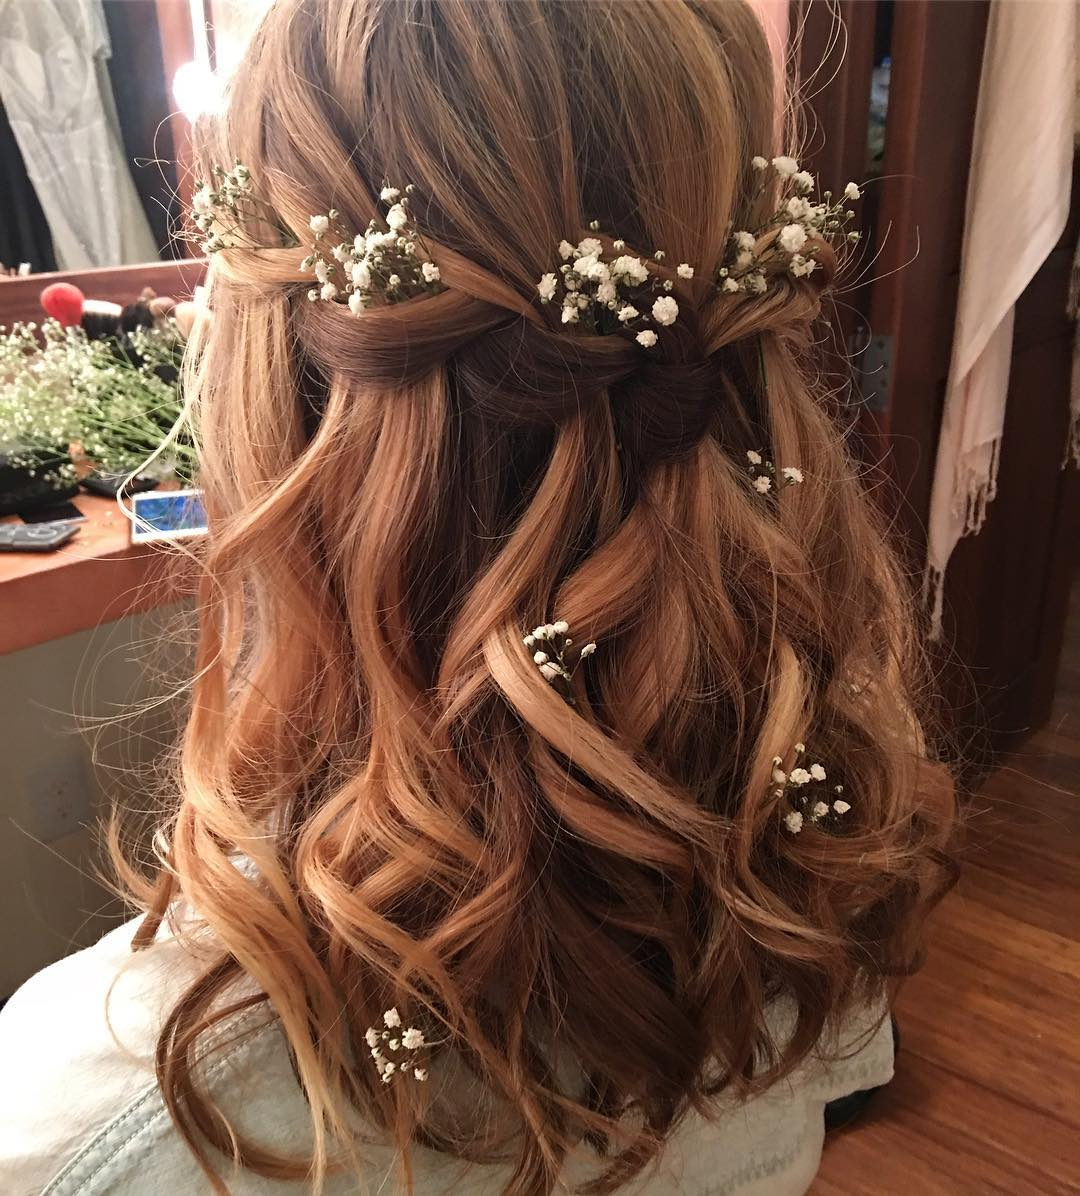 Hairstyle Ideas For Wedding: 10 Lavish Wedding Hairstyles For Long Hair